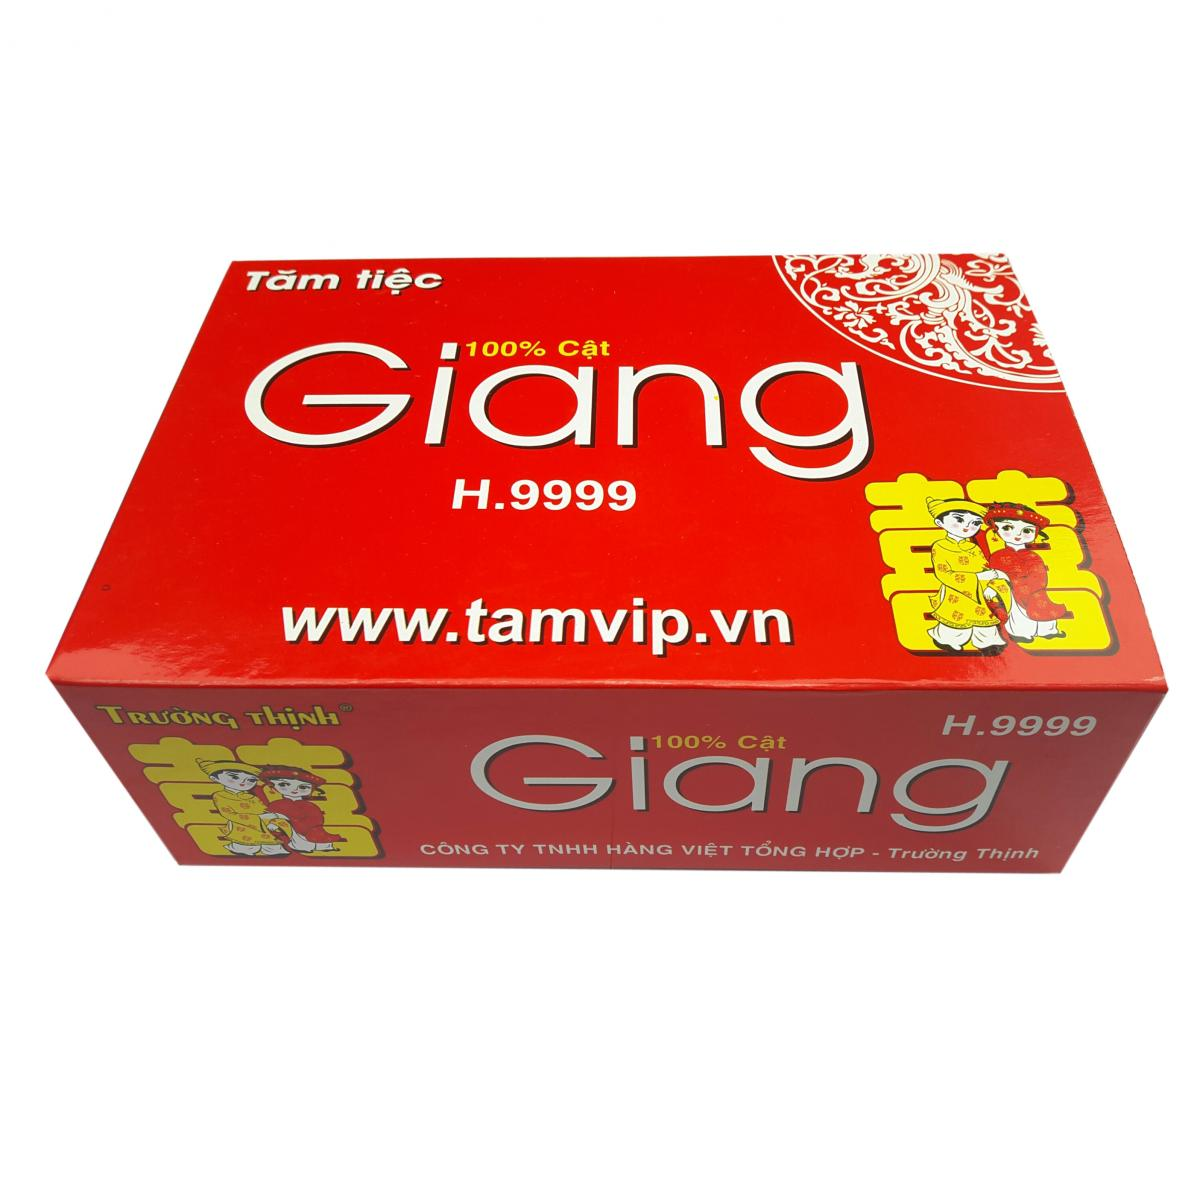 Hỷ giang 9999